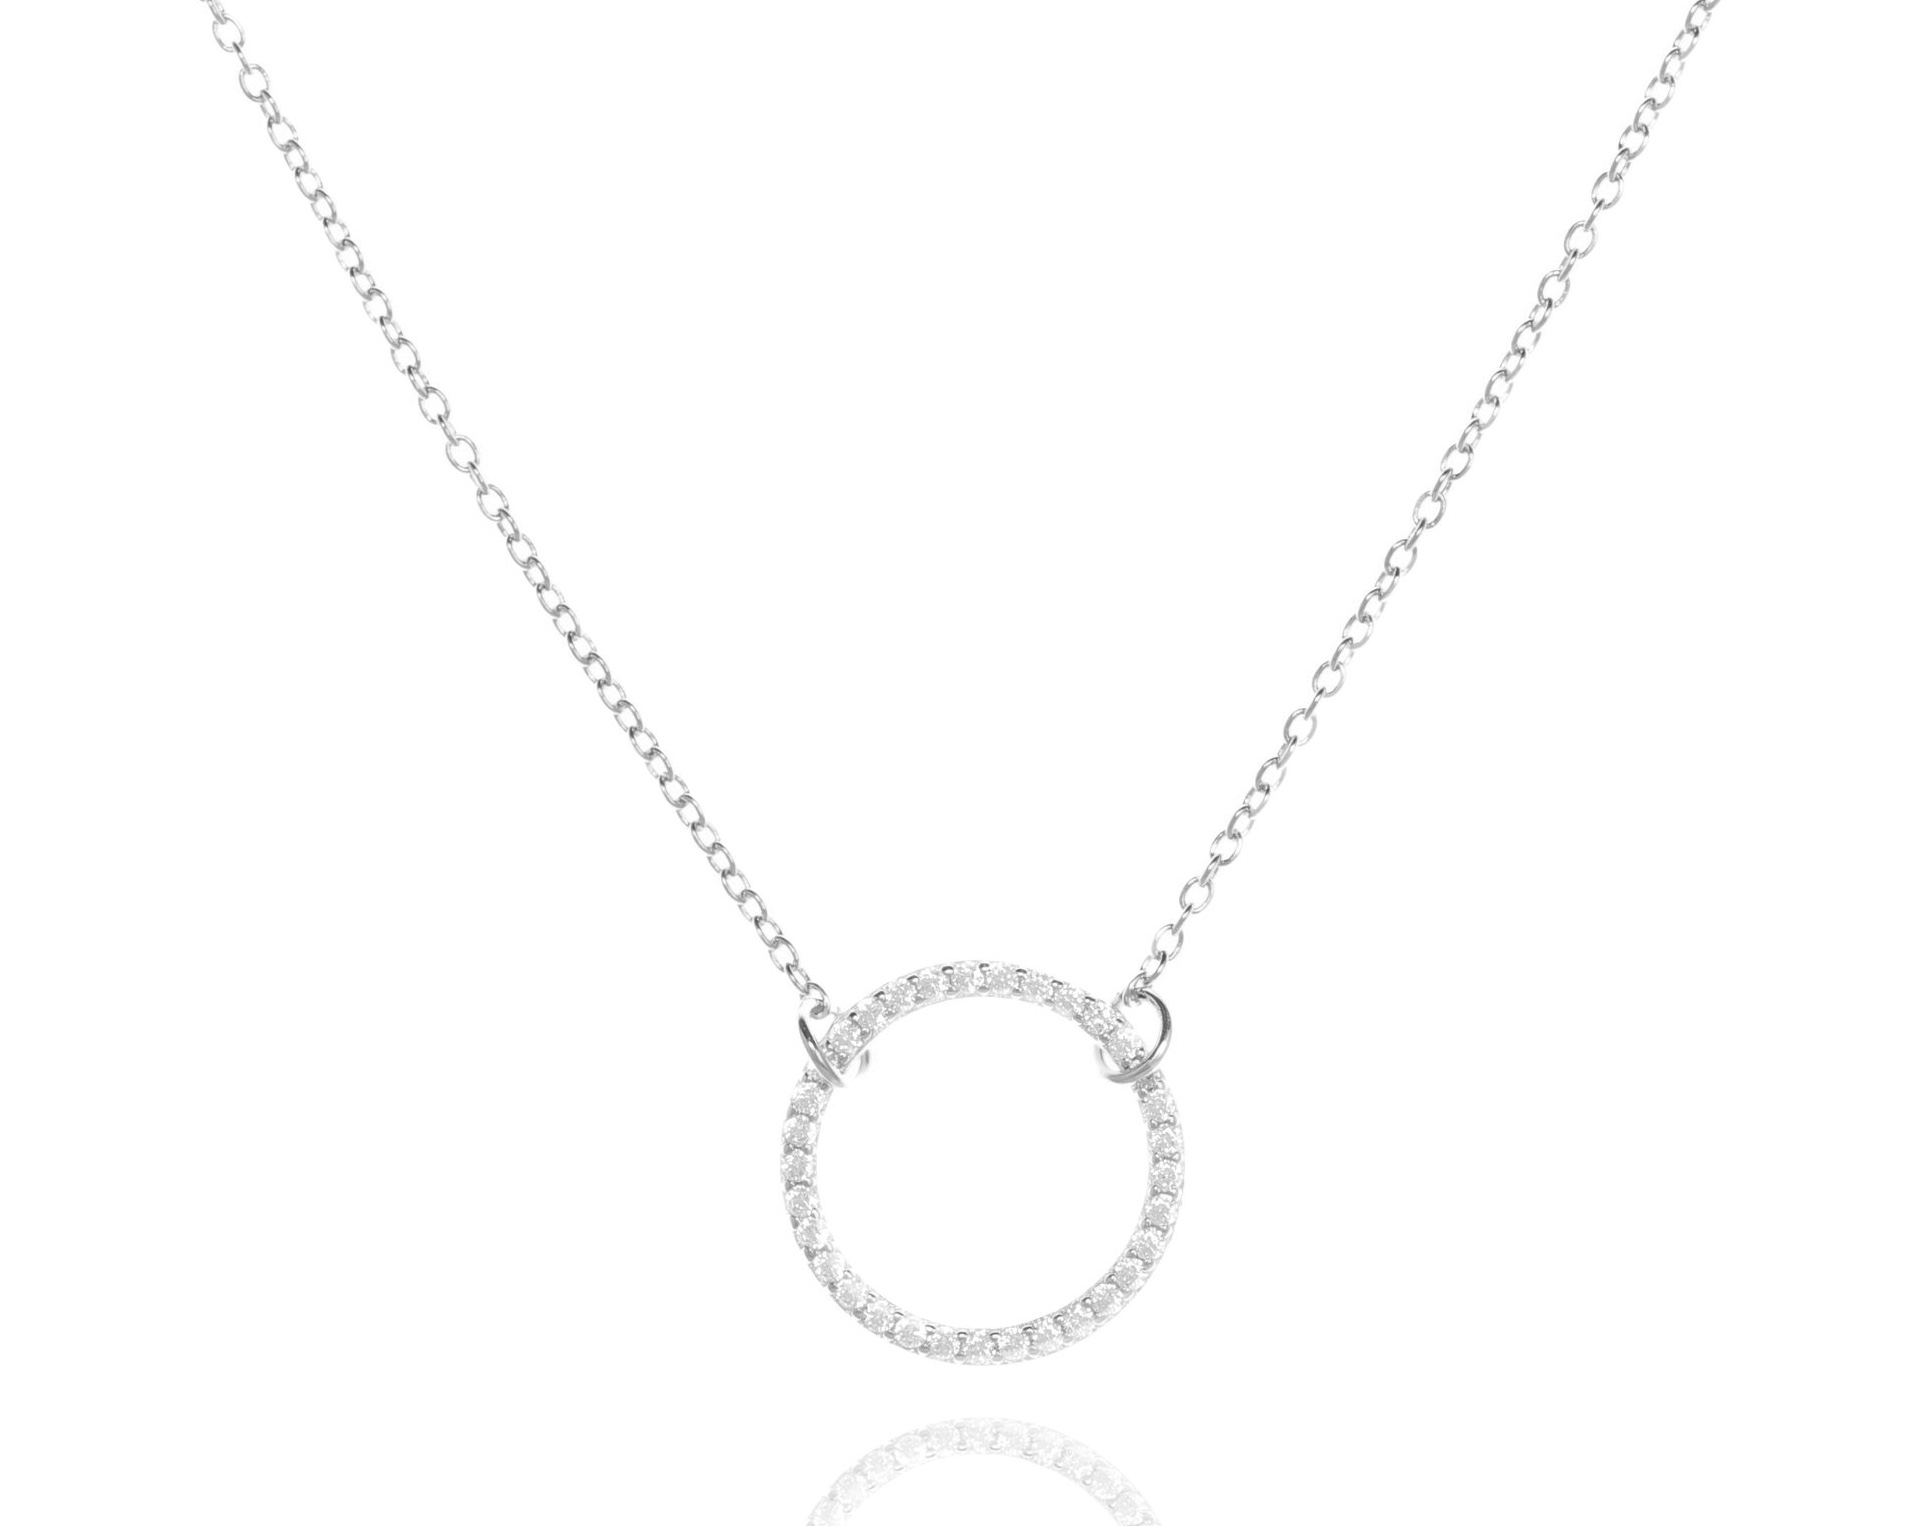 Necklace CZ Open Circle - Sterling Silver NJ-39/S